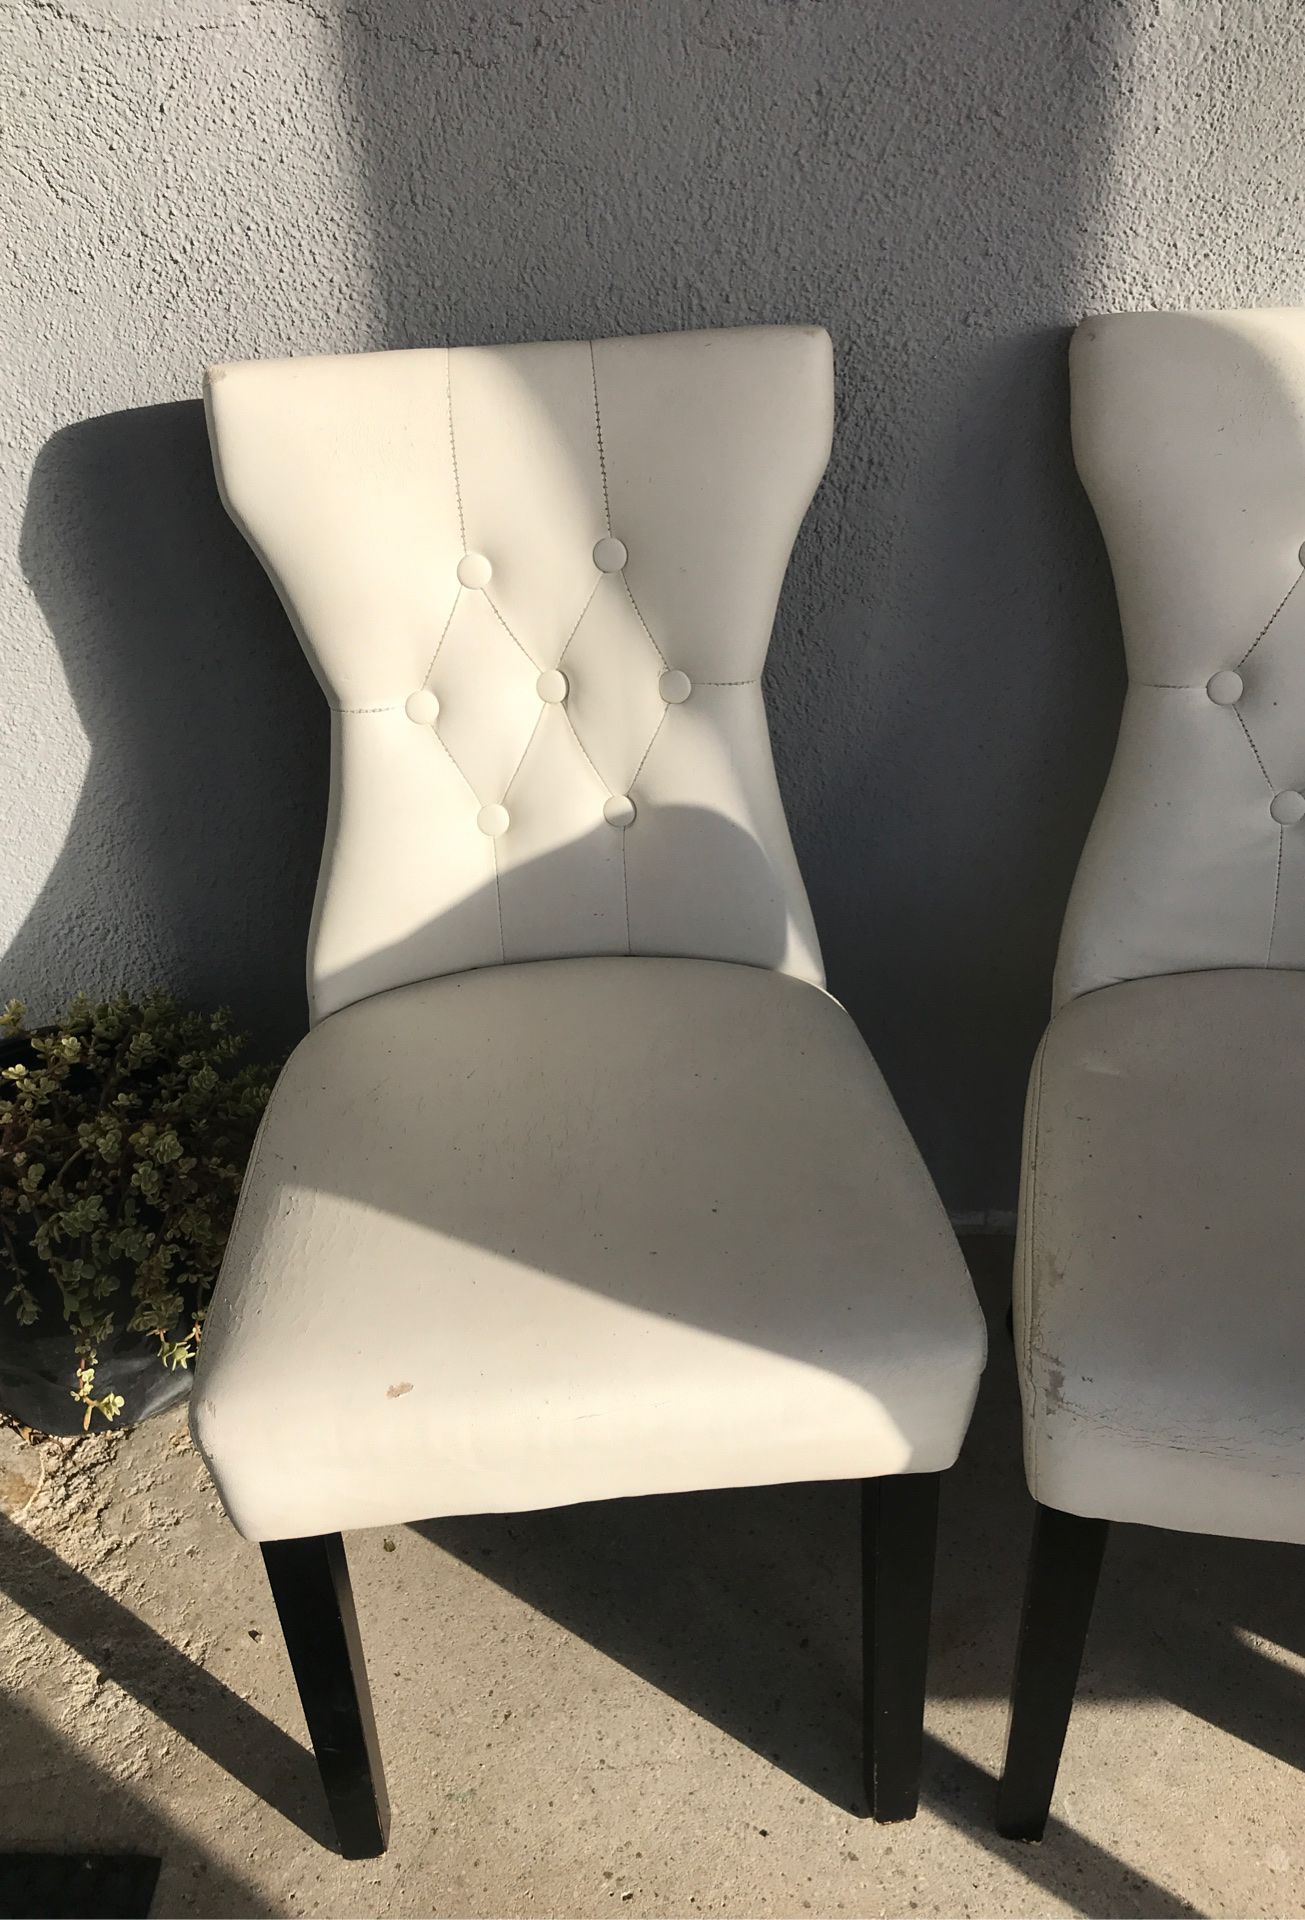 White and black chairs